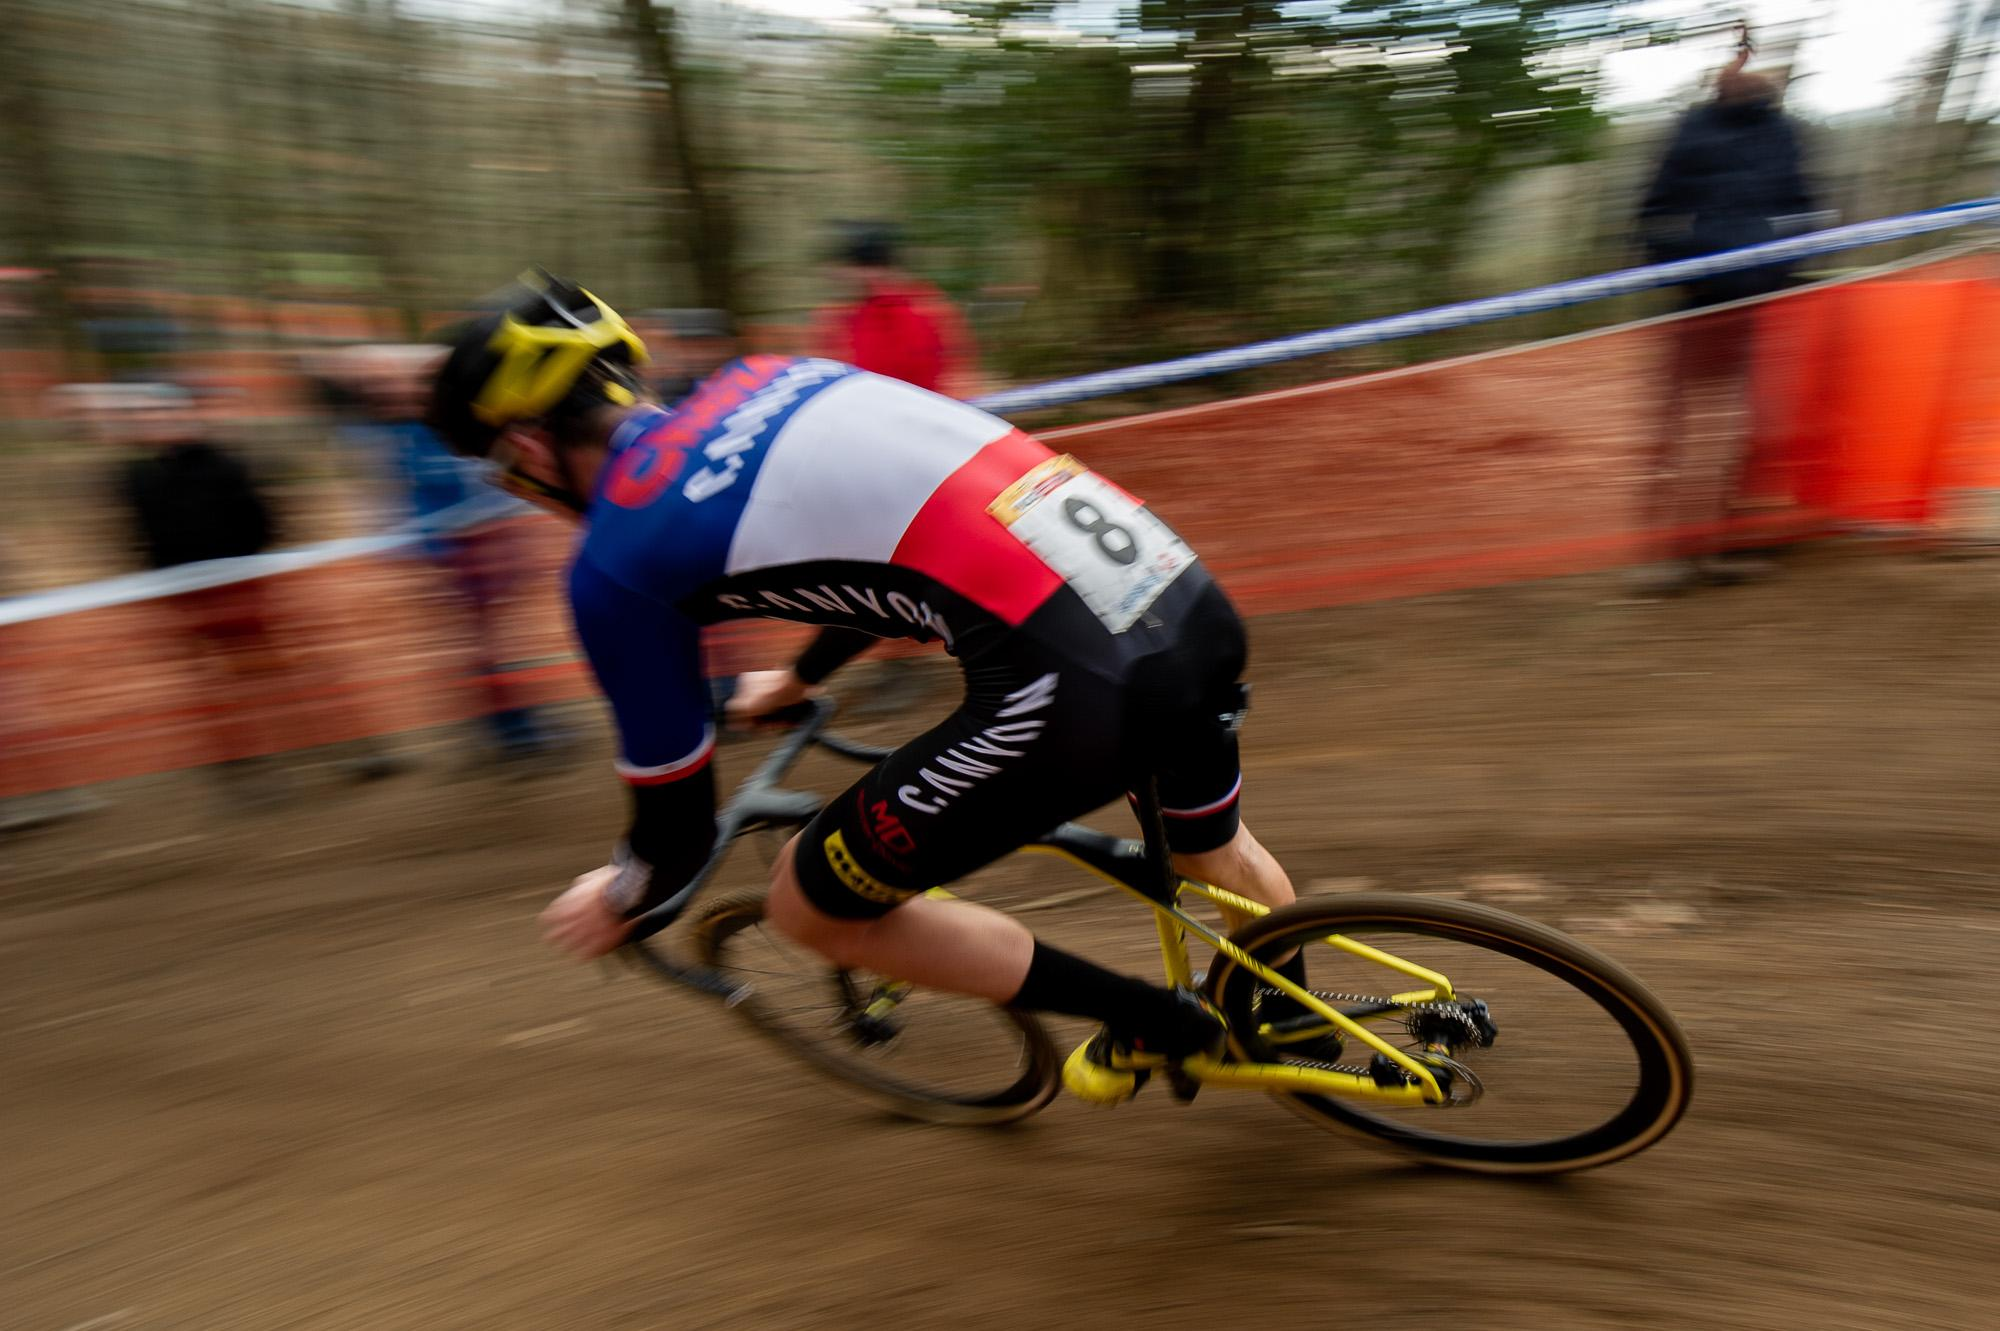 The loudest cheers of the entire race followed recently crowned French CX Champion Clement Venturini.